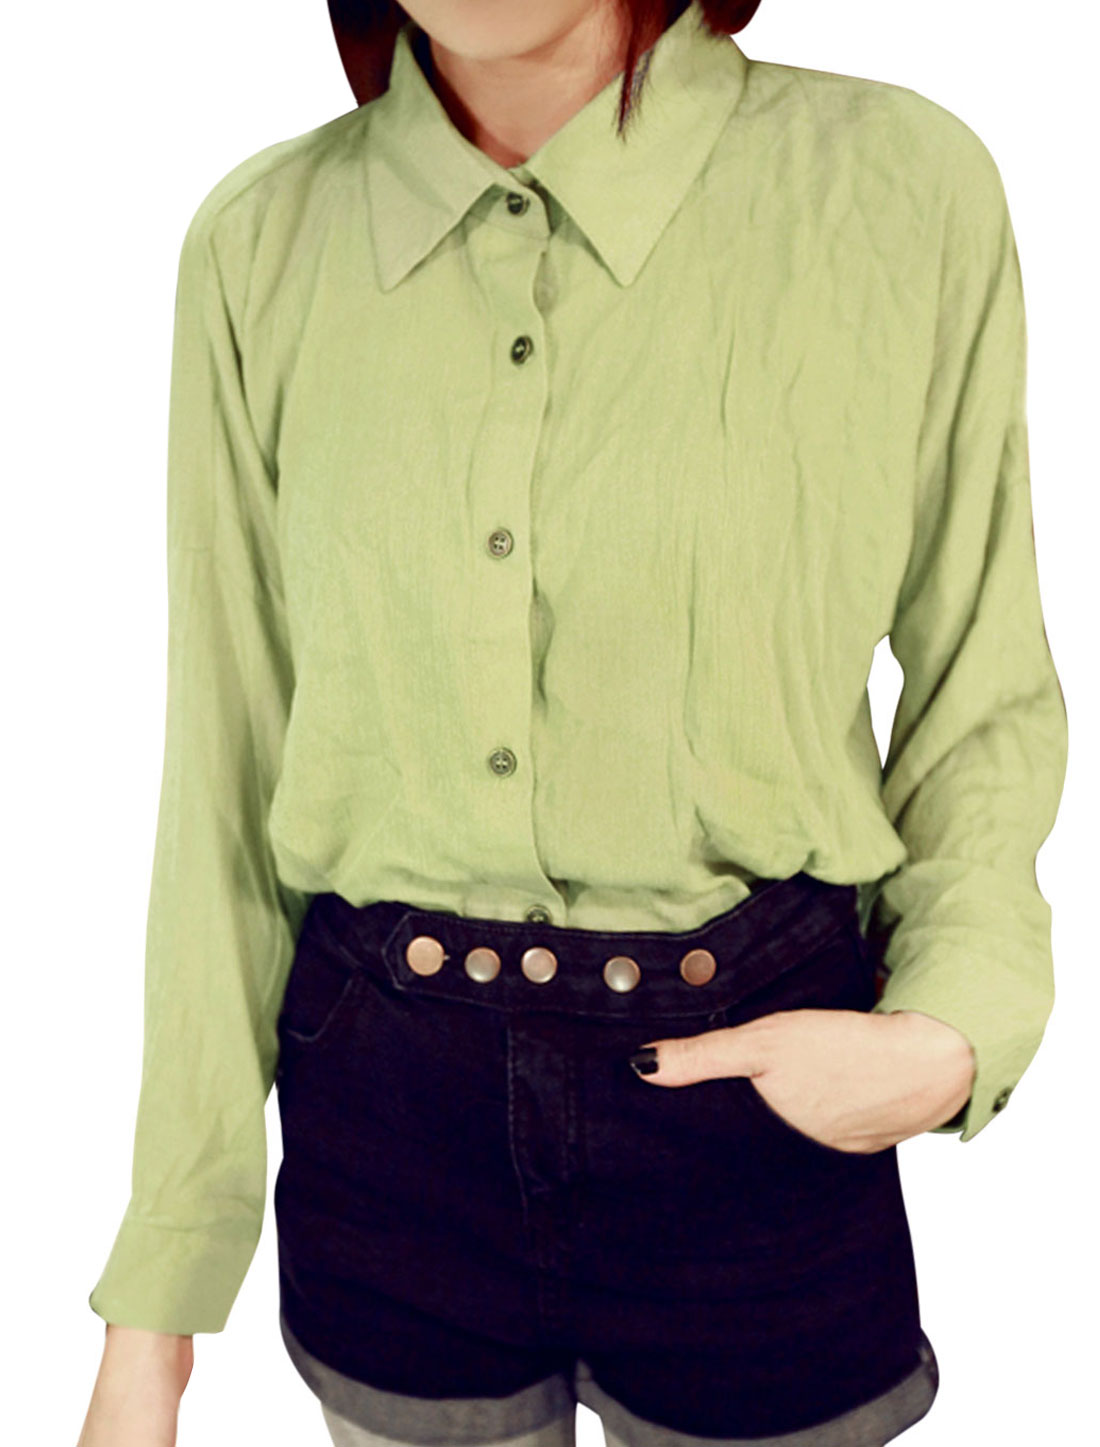 New Style Single Breasted Stylish Shirt for Lady Light Green XS